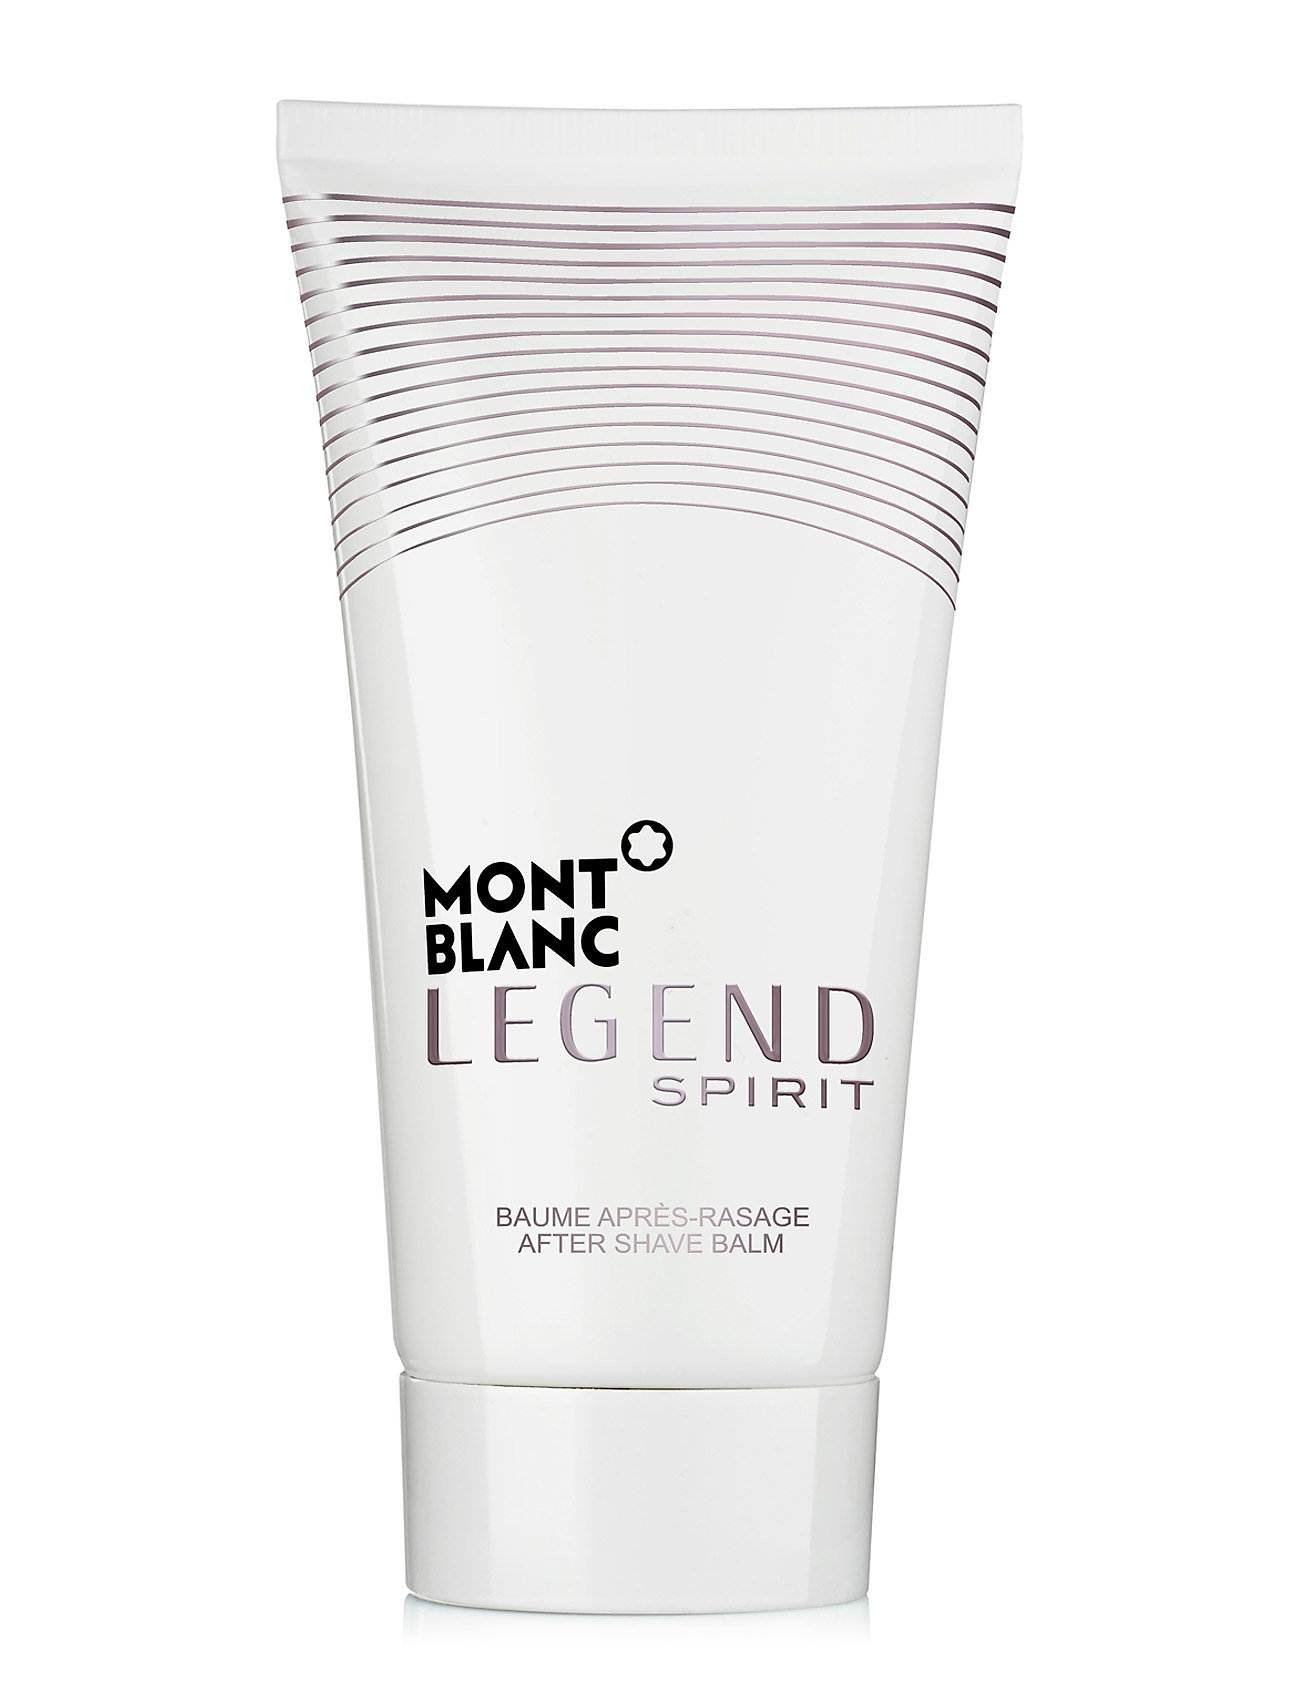 mont blanc – Legend spirit aftershave balm på boozt.com dk